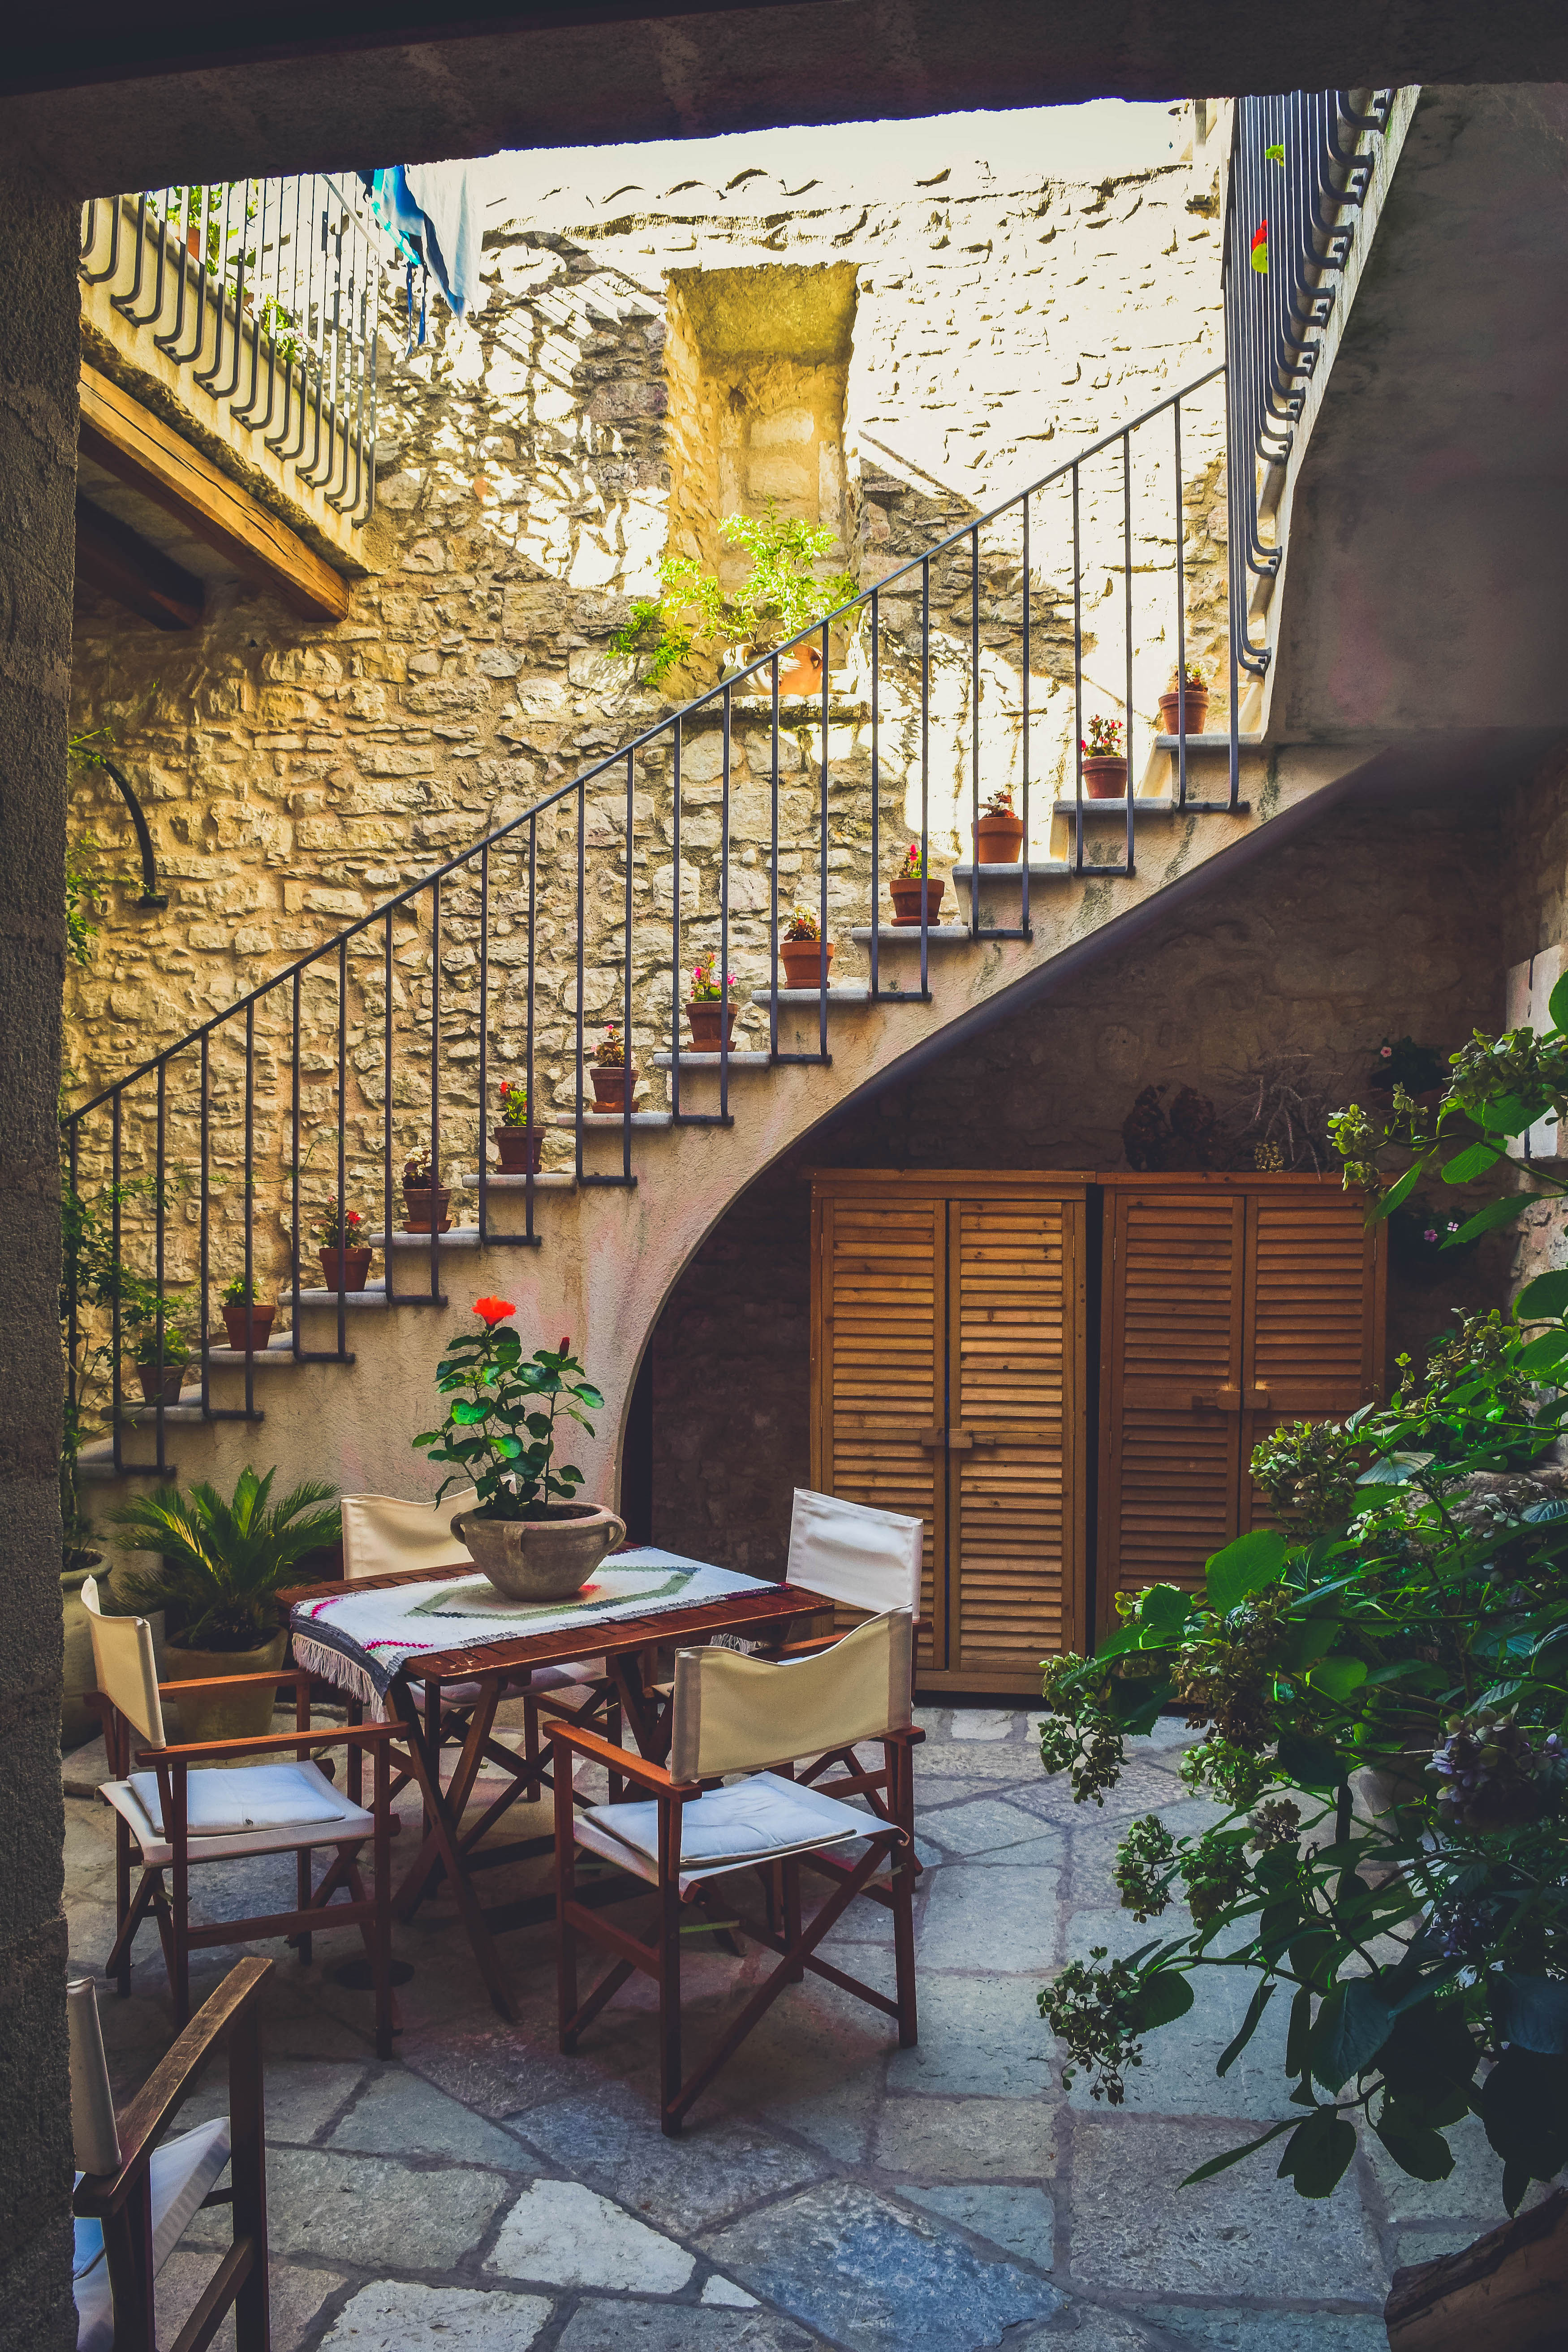 Where to Stay in SIcily Erice Pietre Antiche Apartments Mountain Italia Review Airbnb bed and breakfast rare jewel best place to stay svadore